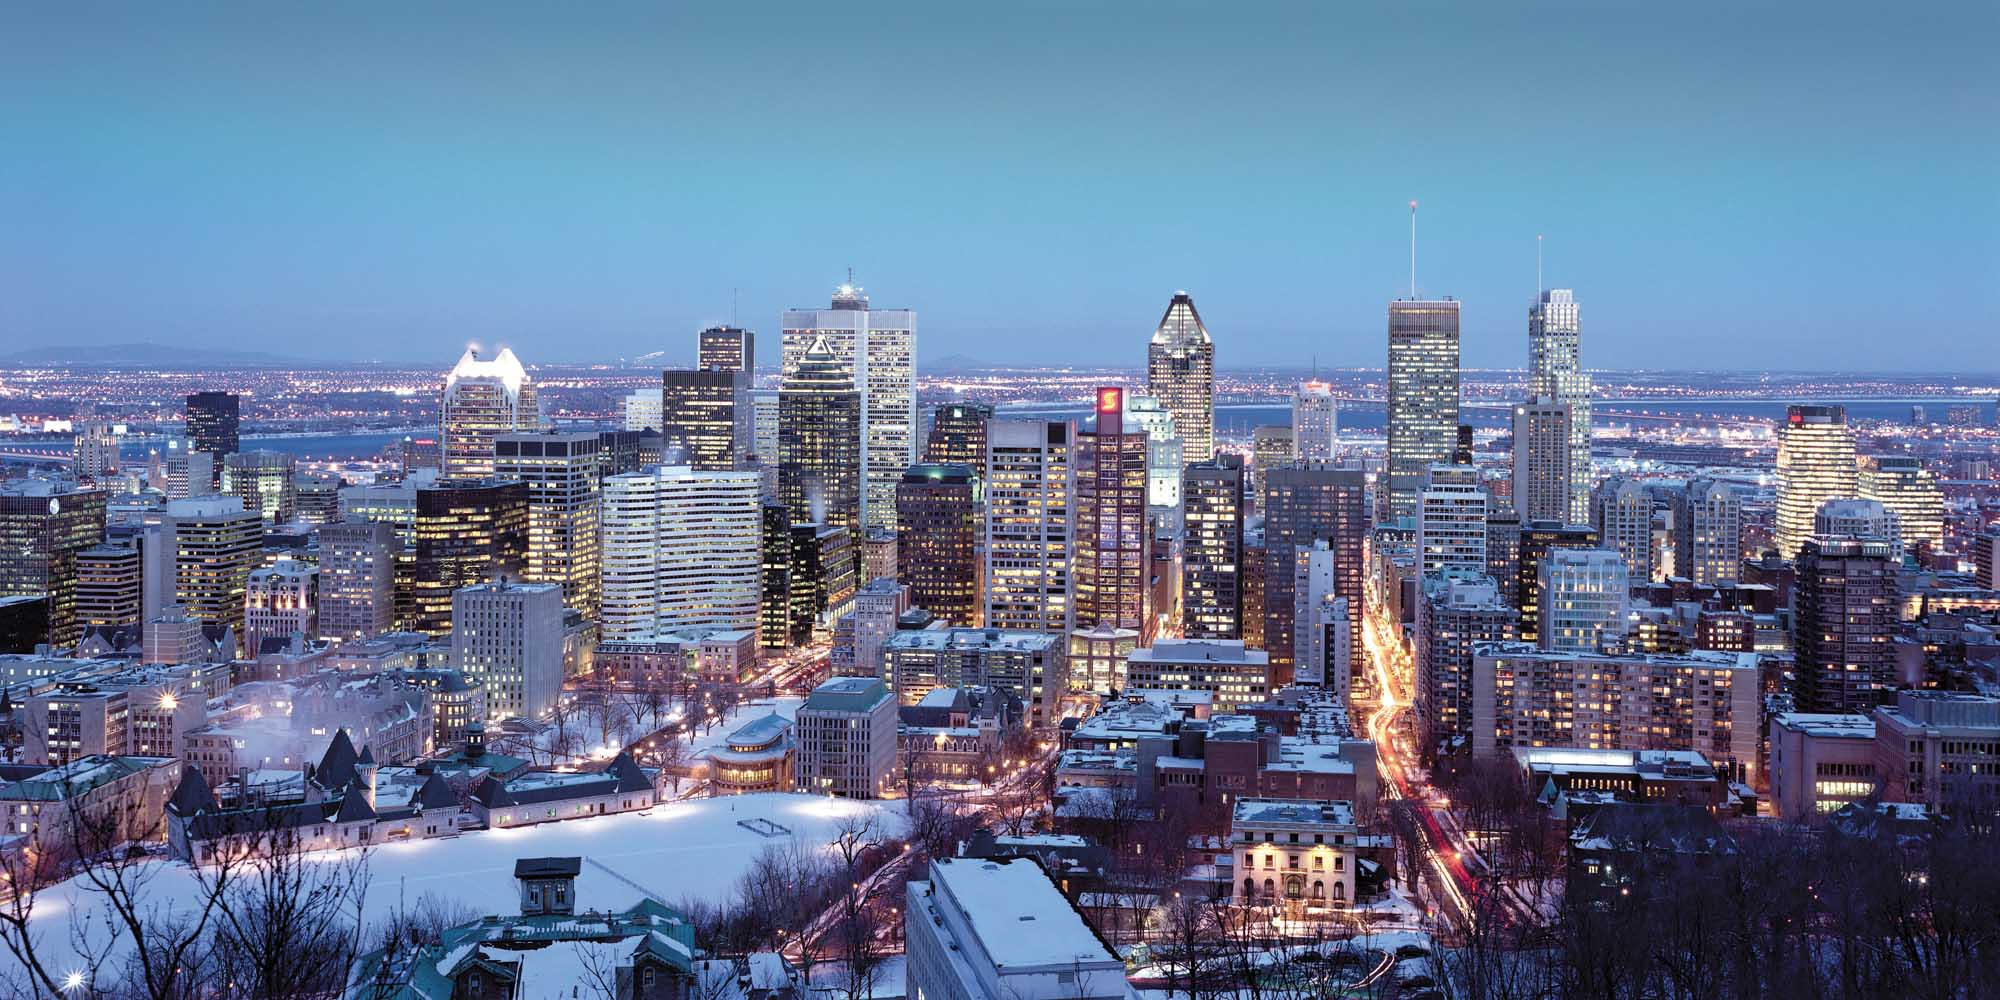 The Quebec City cityscape in winter.